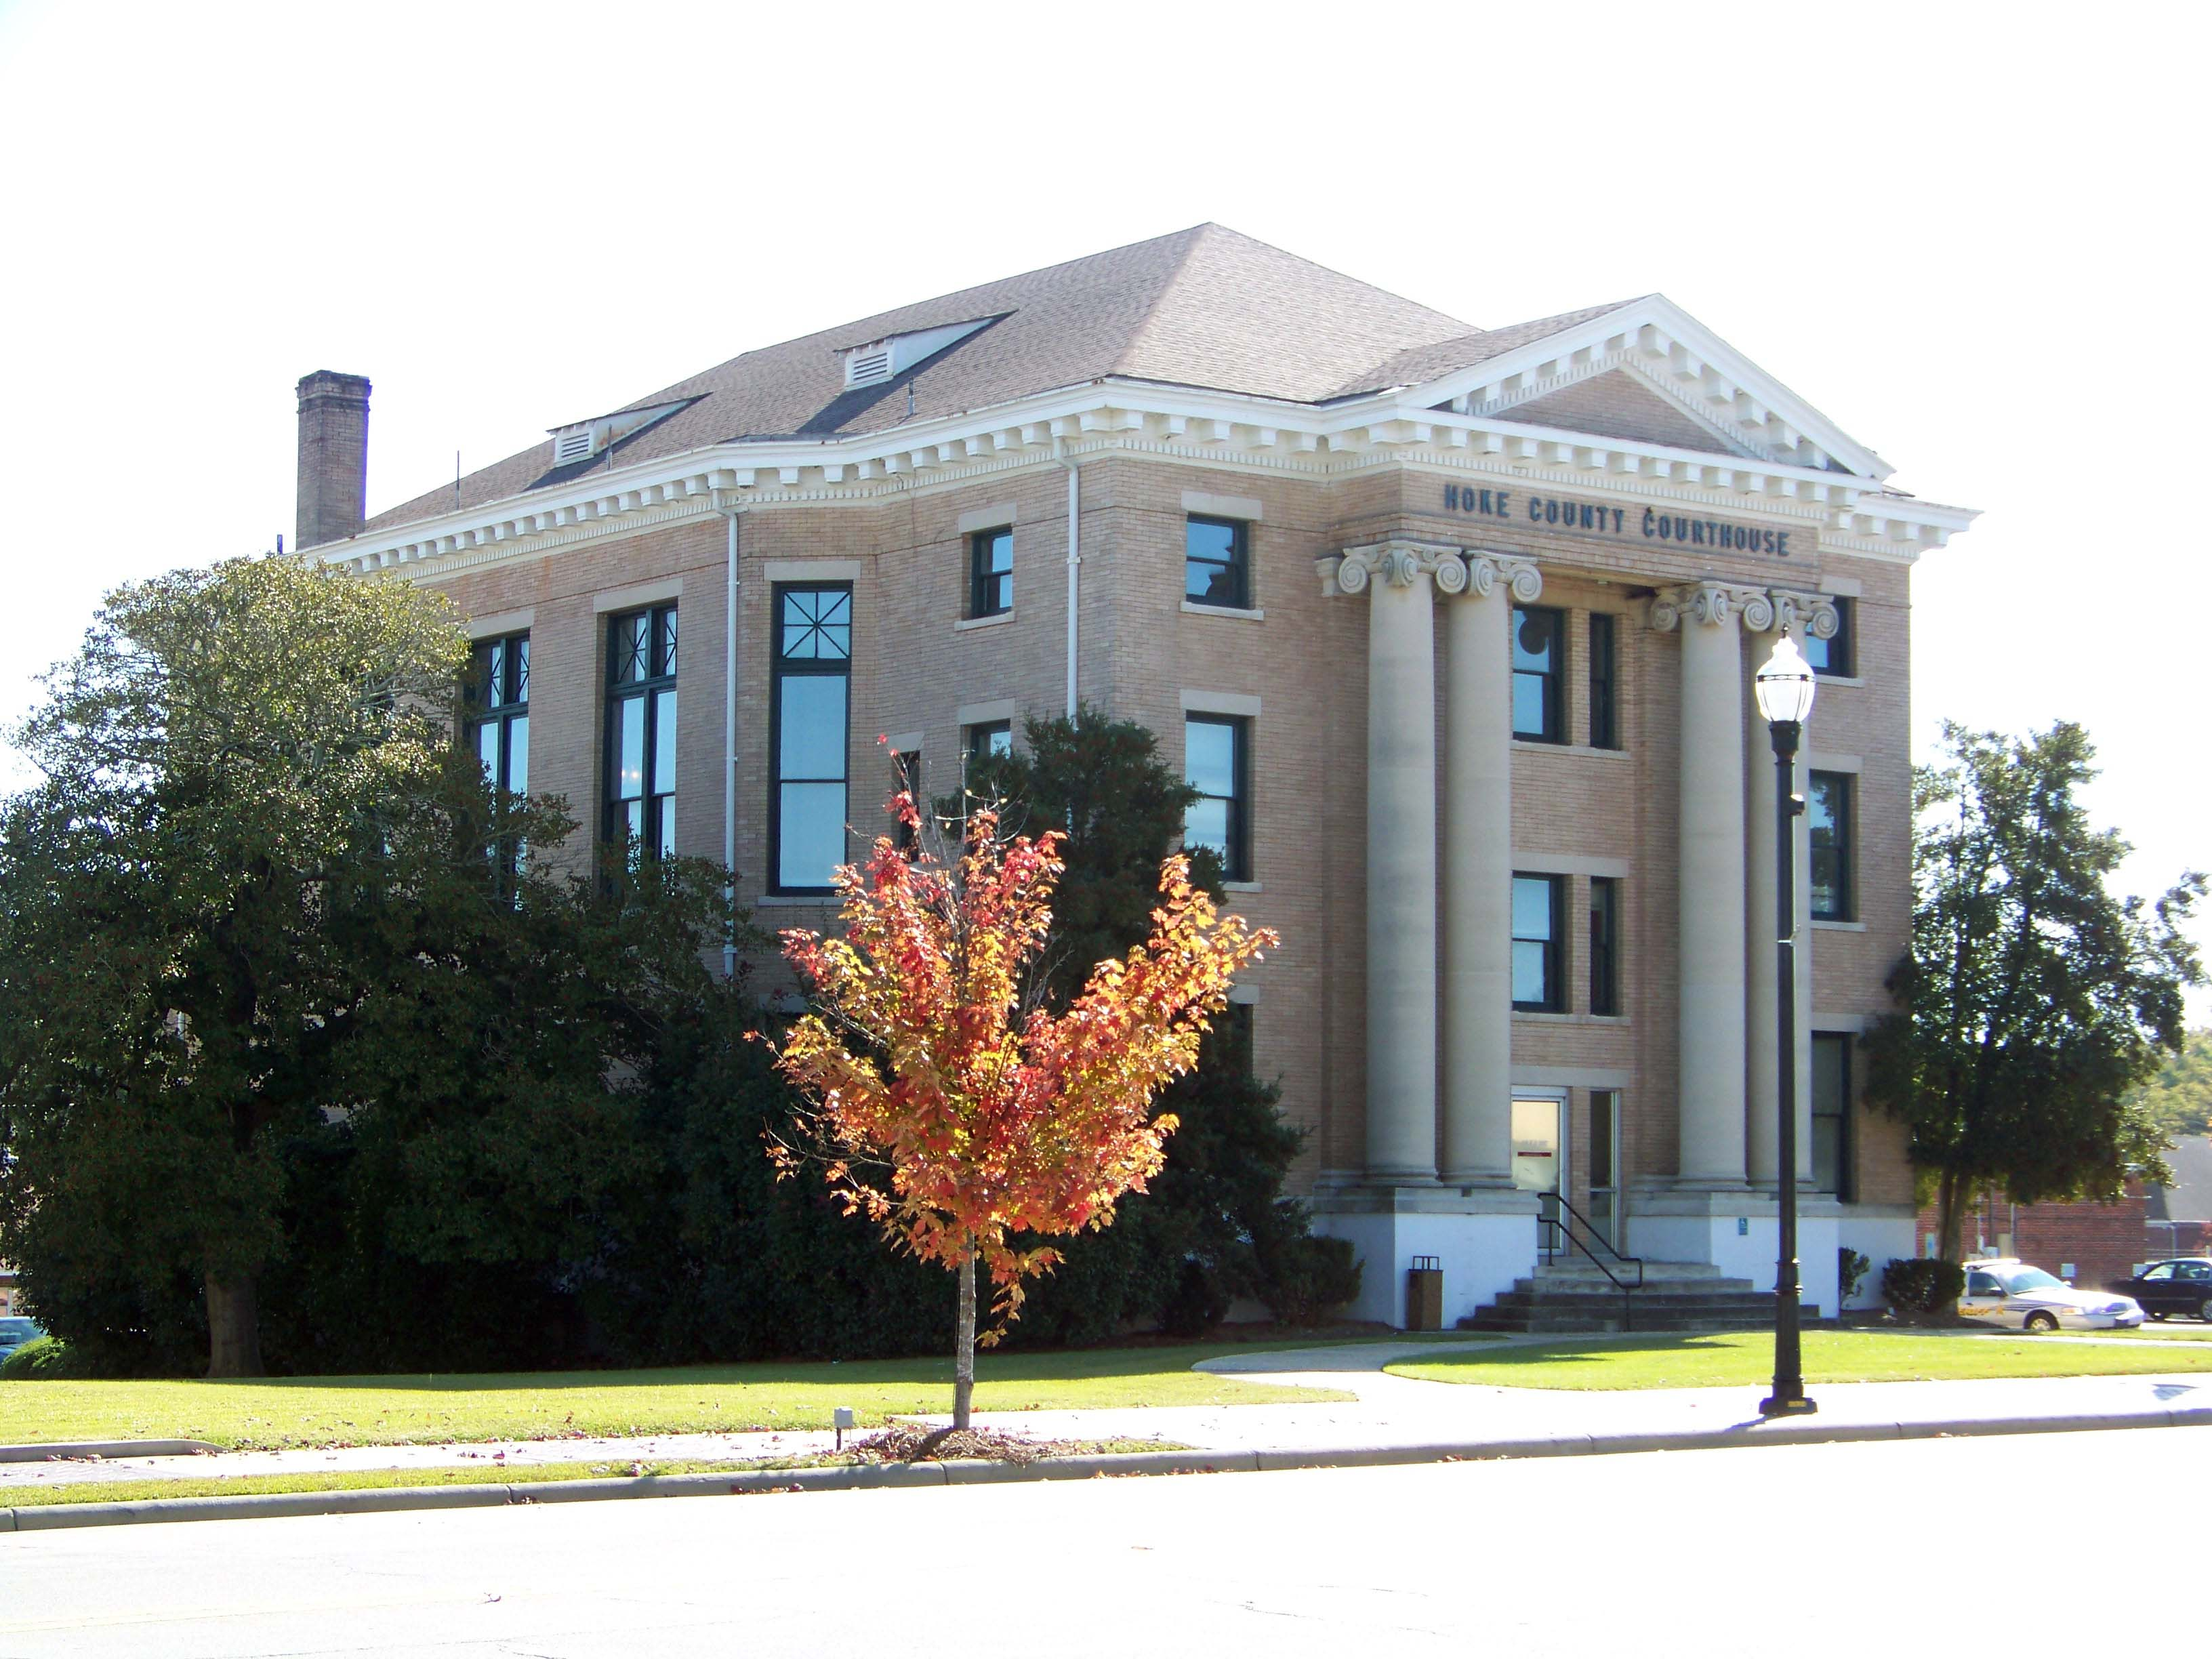 Hoke County Court House